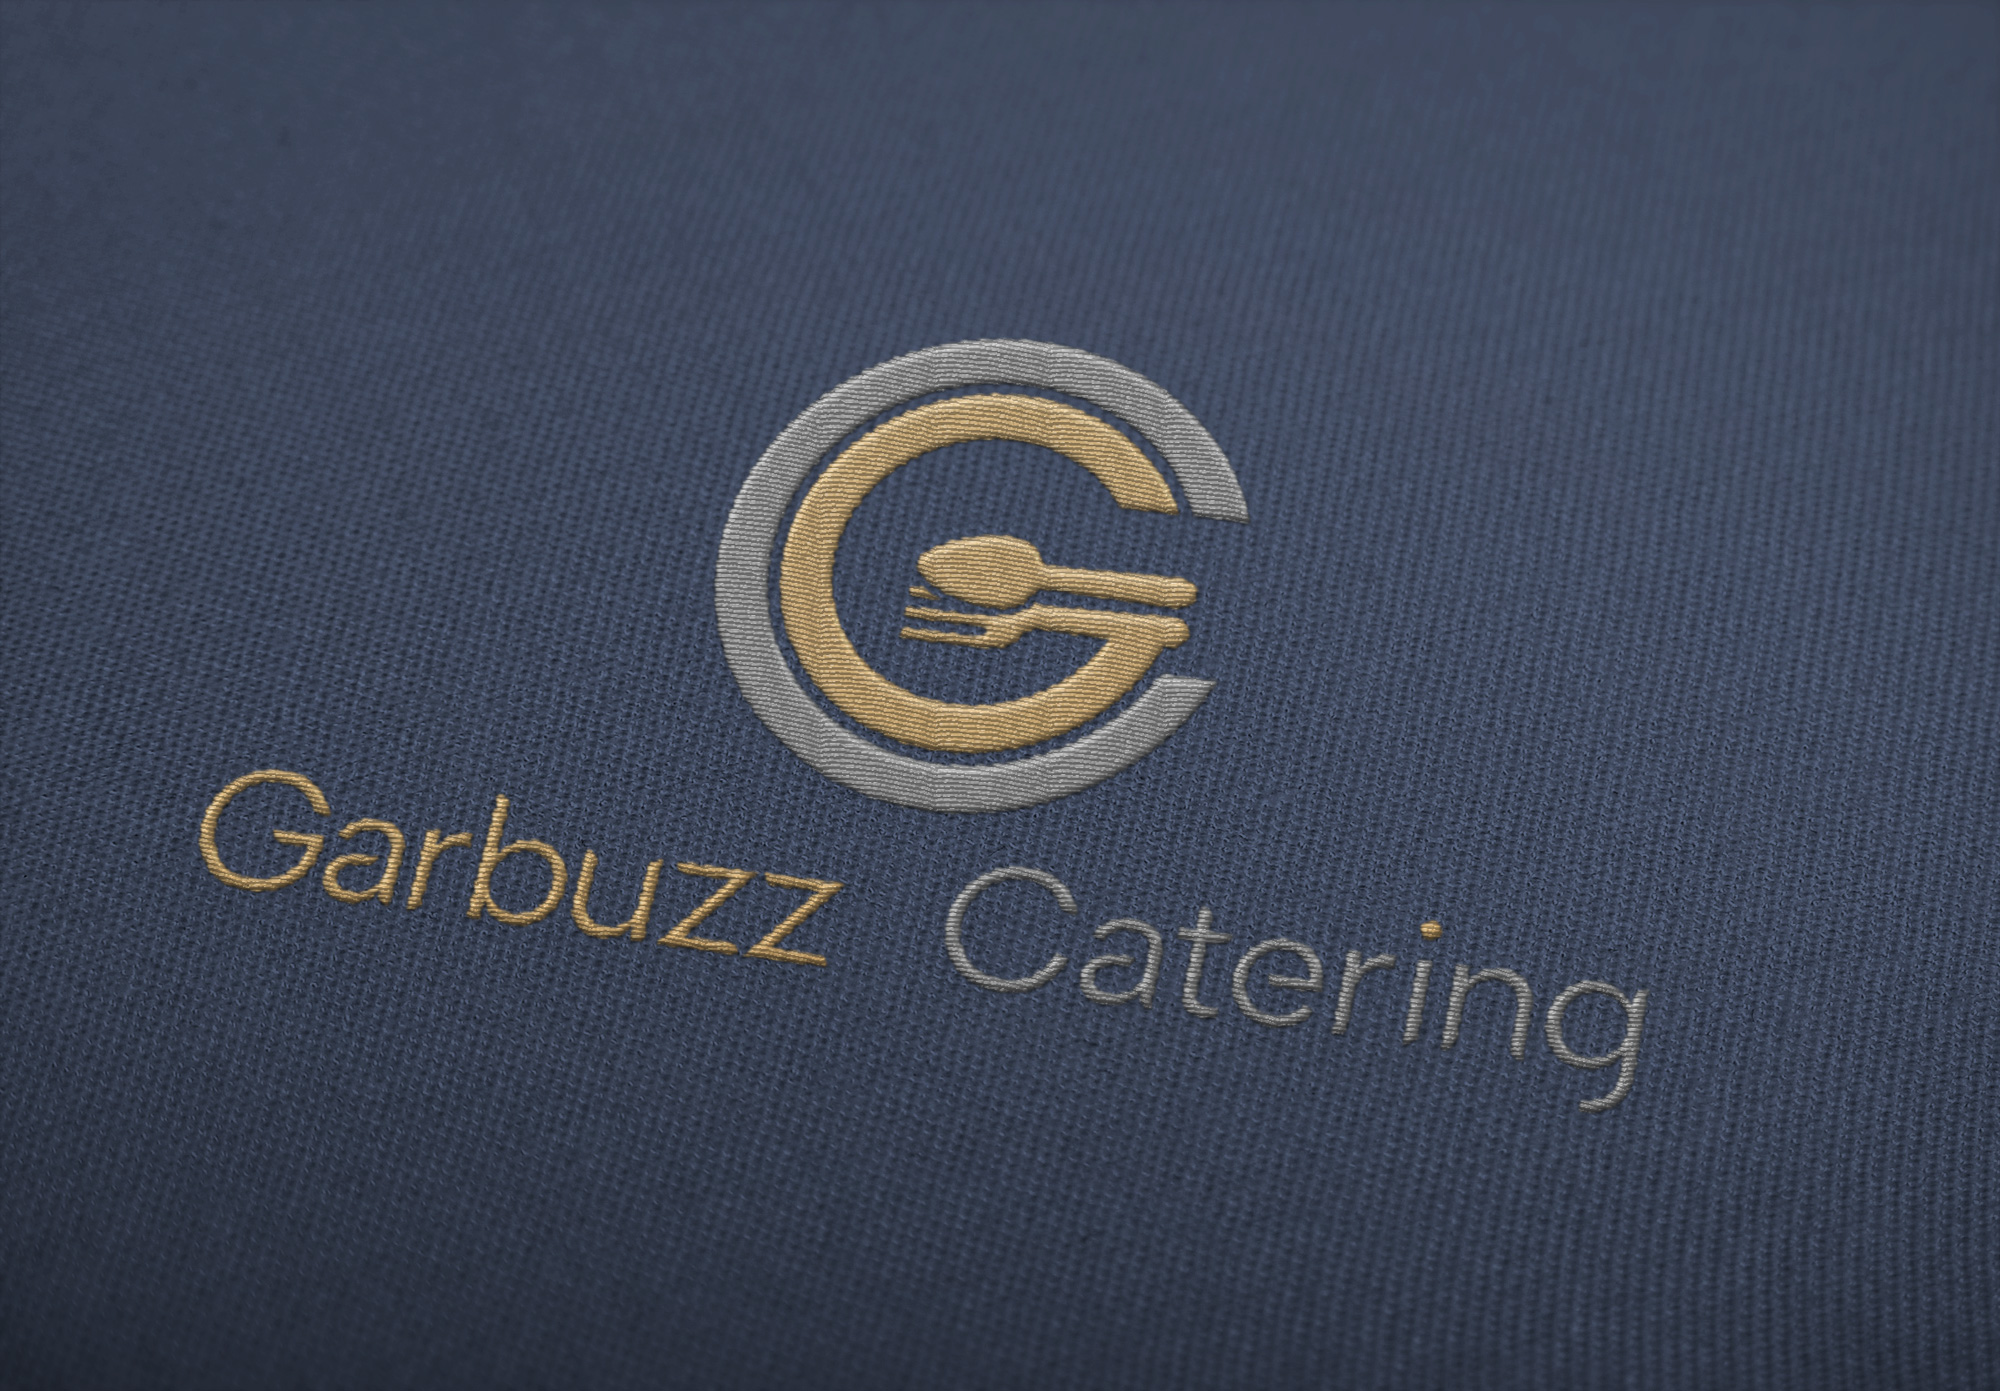 Логотип Garbuzz Catering1